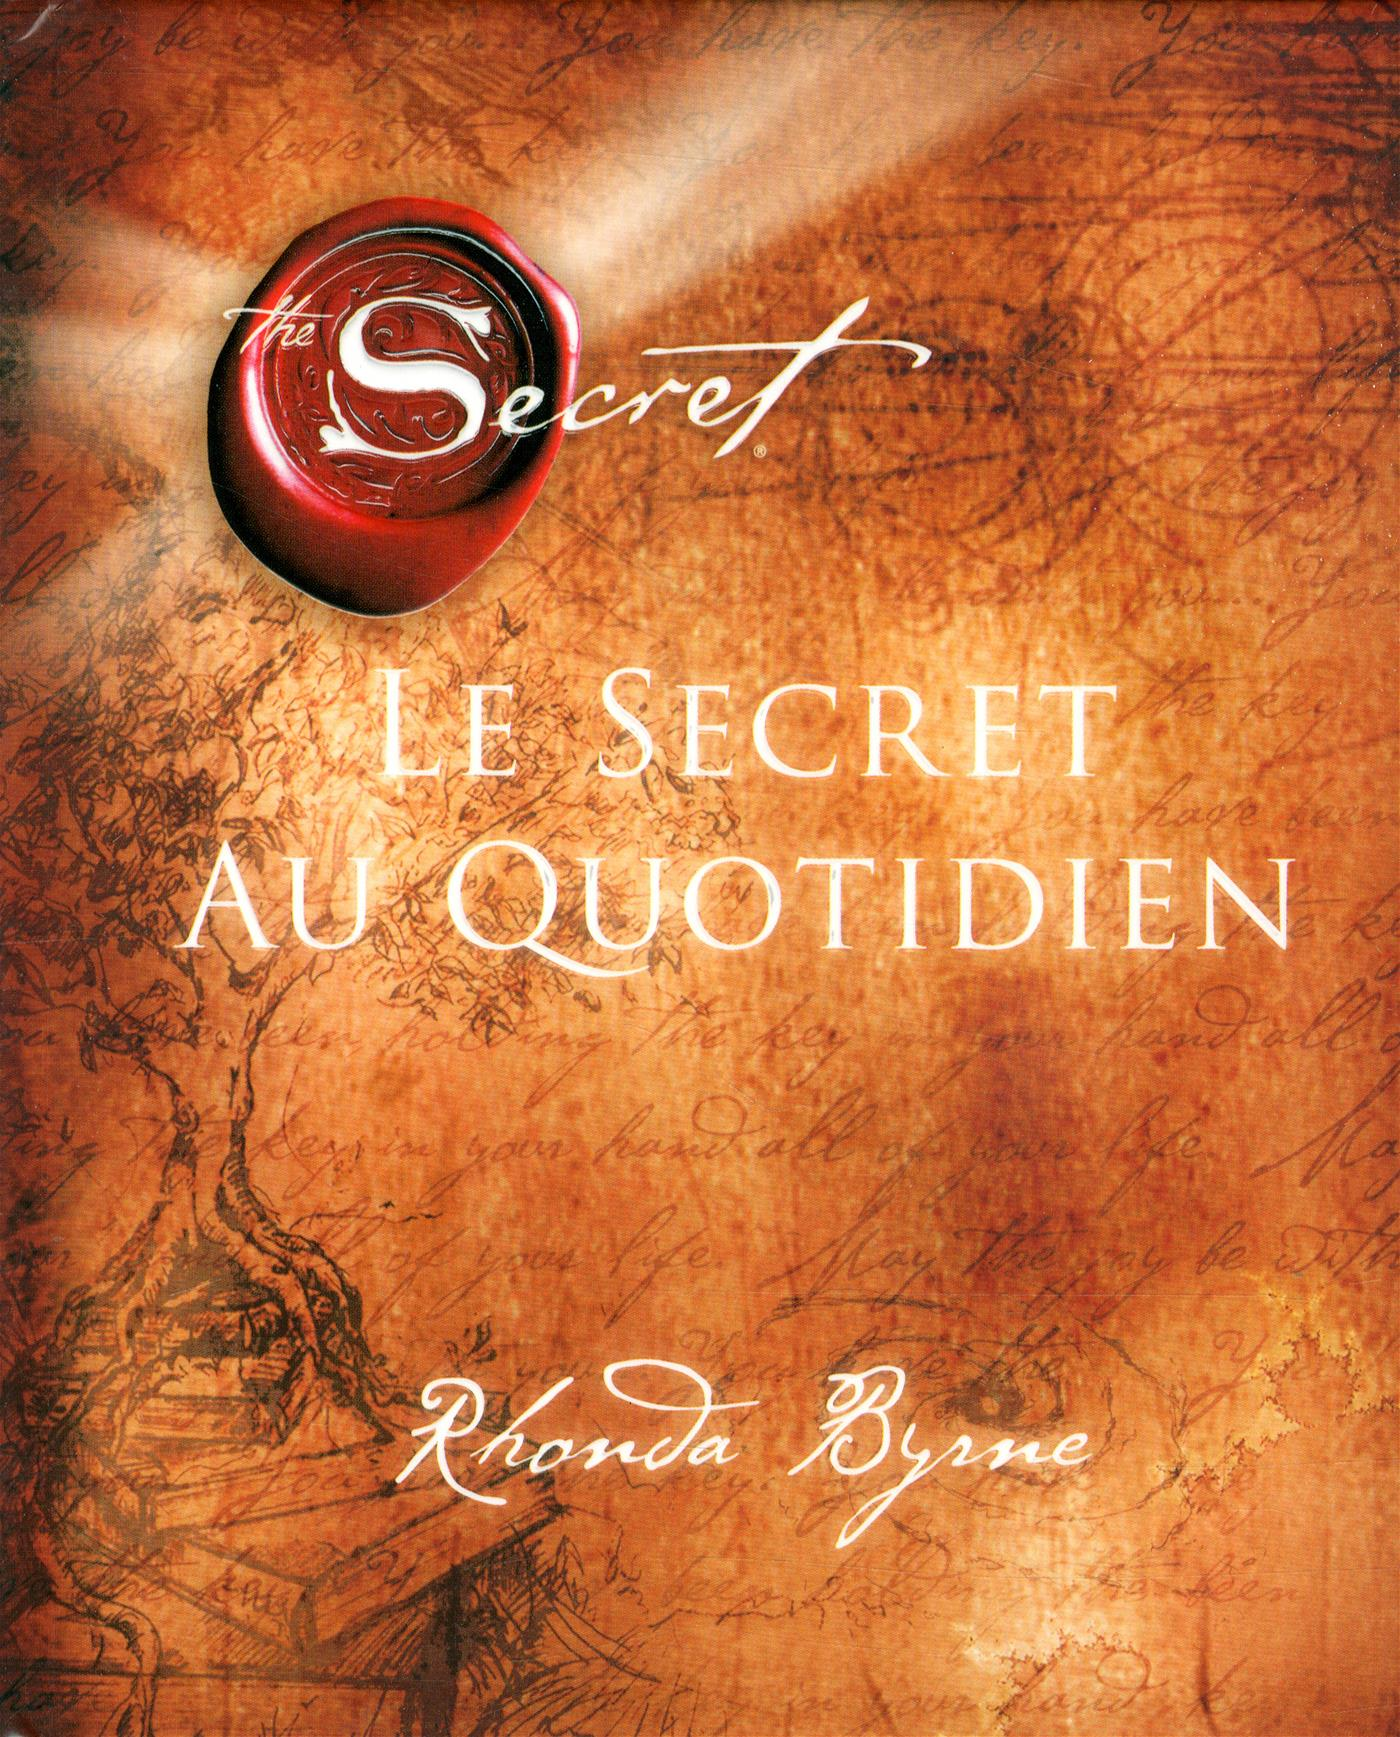 LE SECRET AU QUOTIDIEN